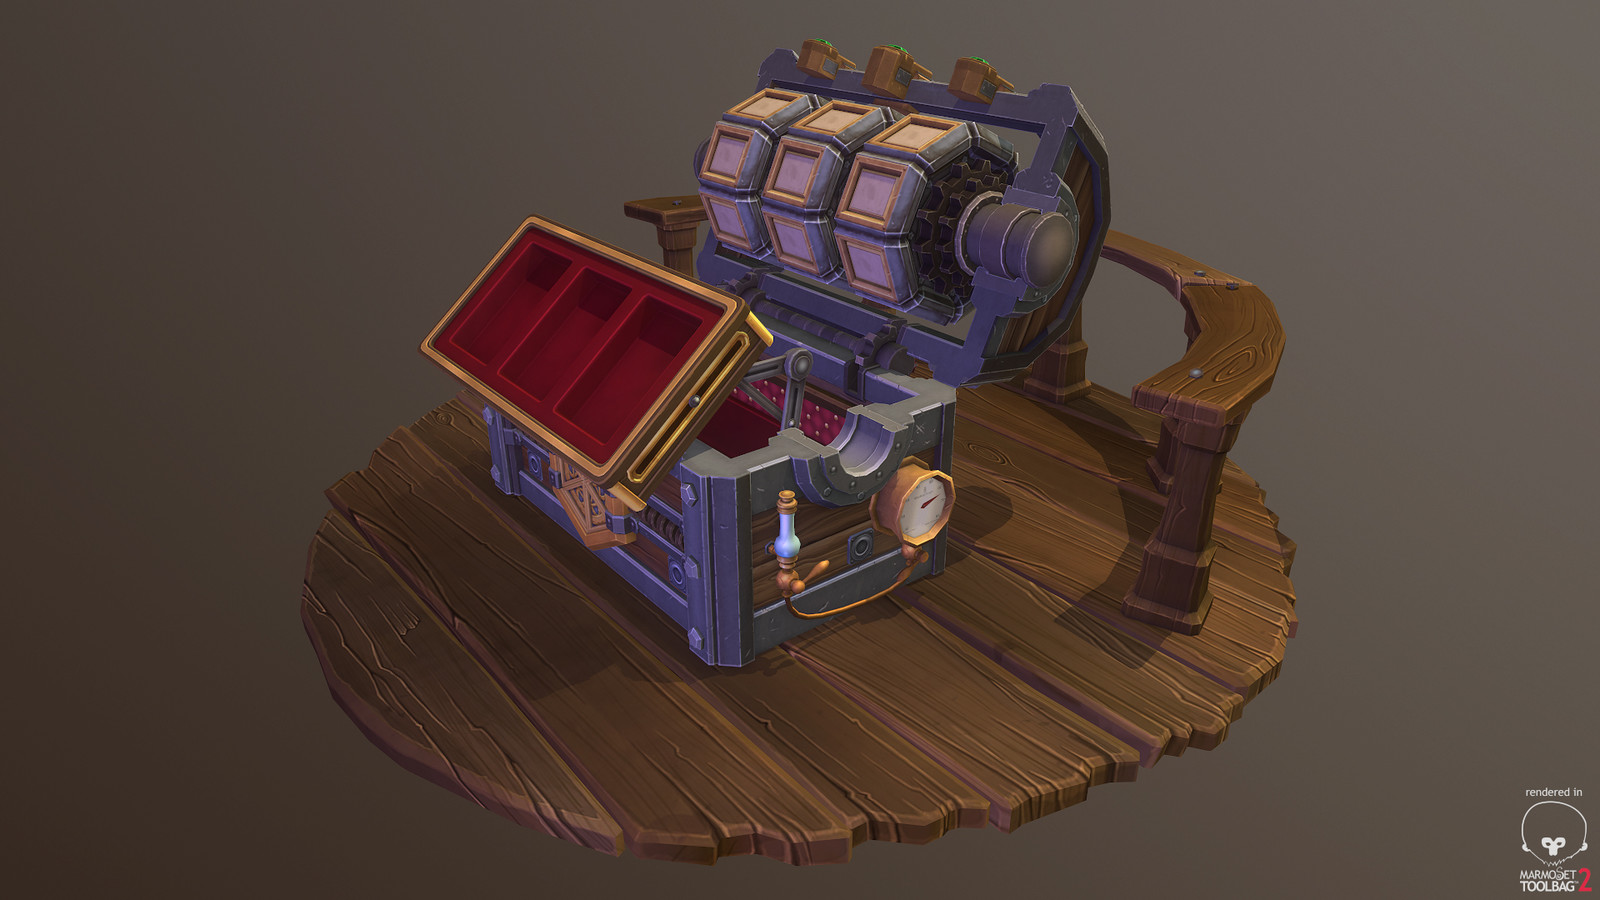 Uber Chest - Stage Three - Inner tray animates up and out to present the player with their rewards!!